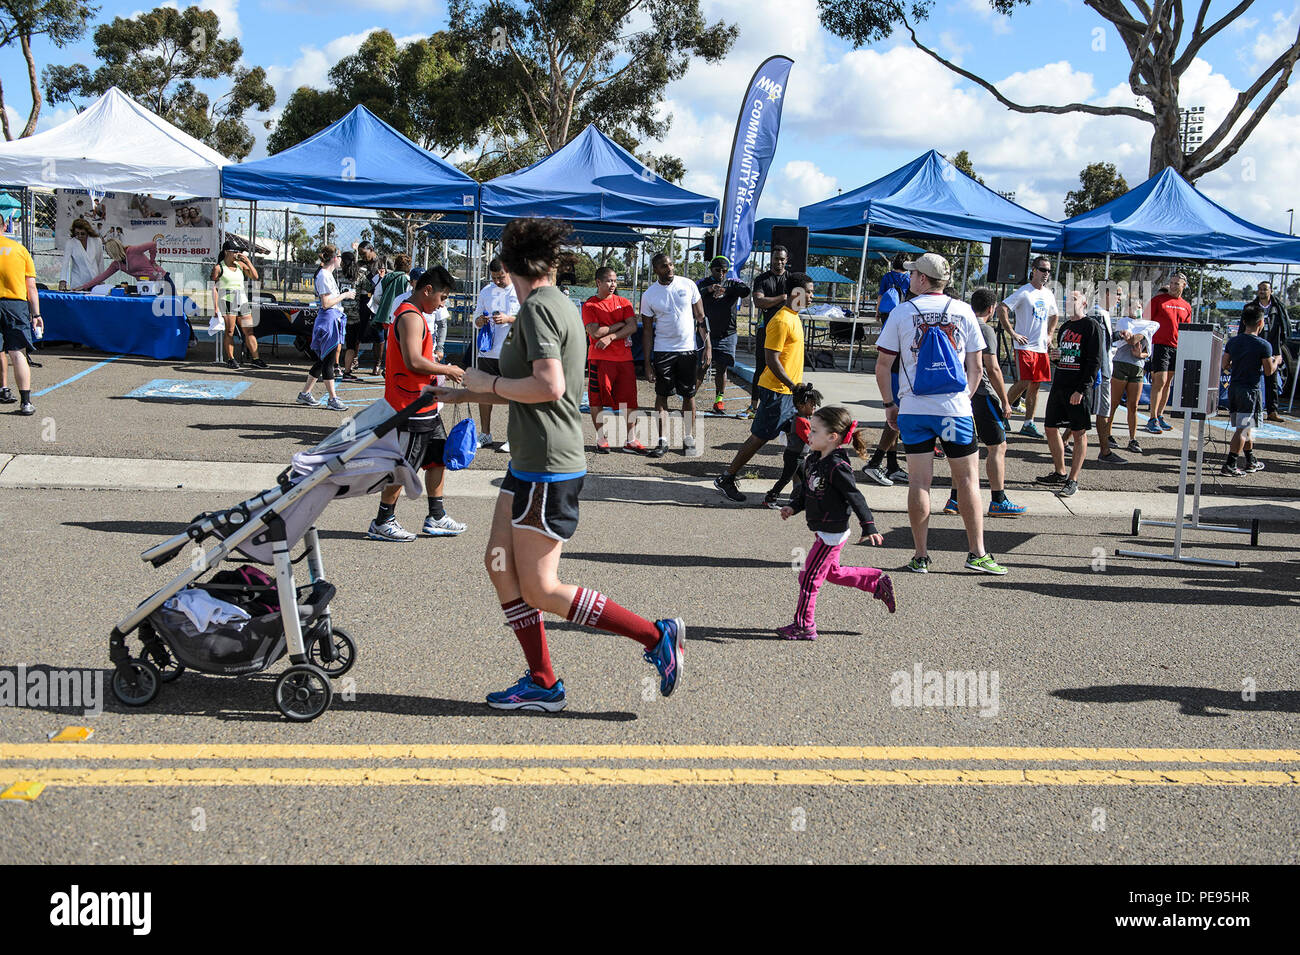 NAVAL BASE SAN DIEGO (Nov. 10, 2015) Servicemembers, family and friends take part in a MWR Veterans Day run or walk. The Veterans Day 2 mile run or 1 mile walk was sponsored through MWR and over 300 people attended. (U.S. Navy photo by Mass Communication Specialist 2nd Class Mark El-Rayes/Released) - Stock Image